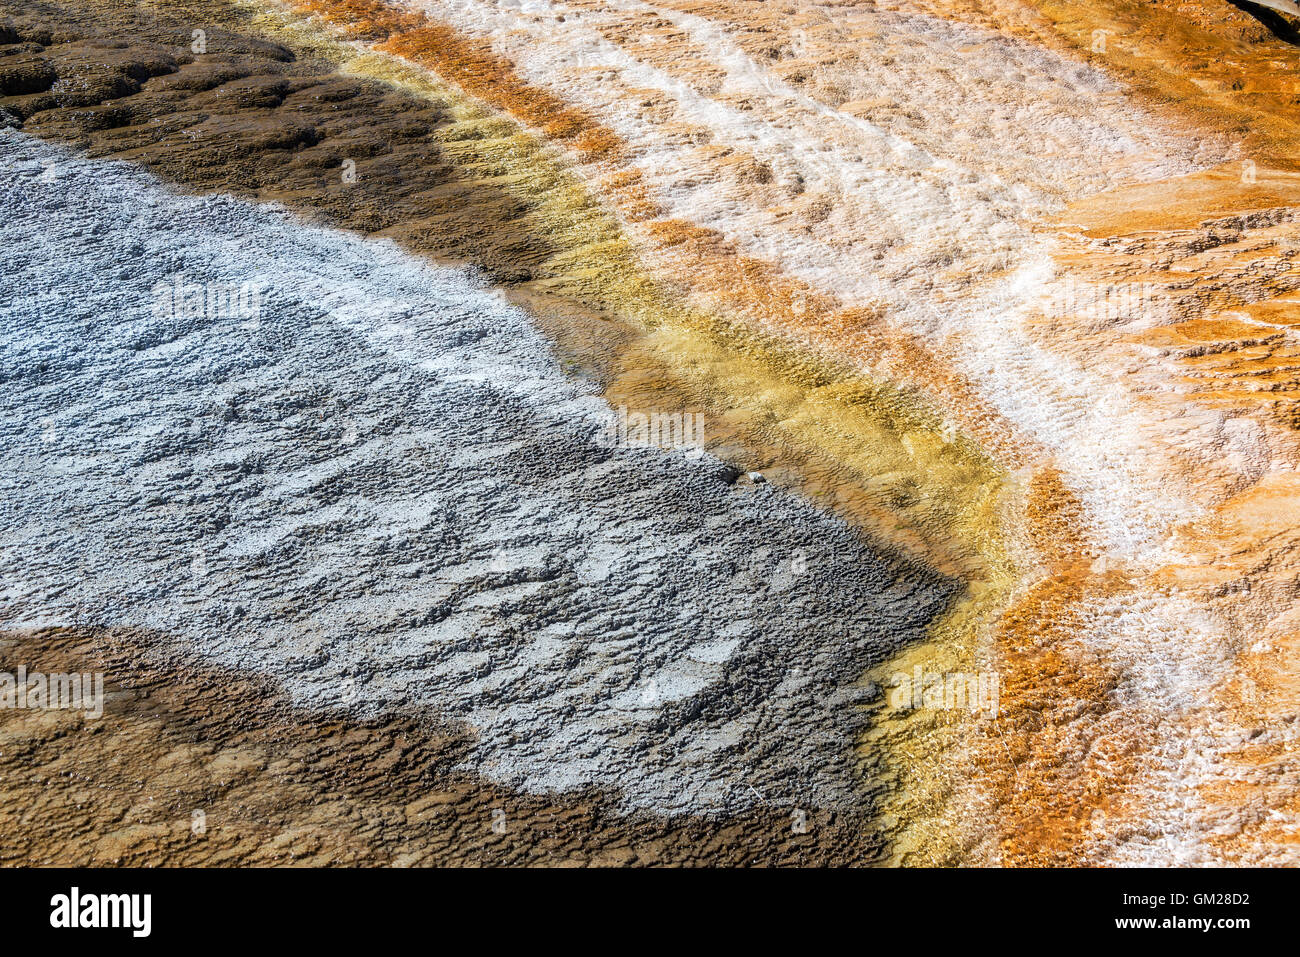 Bacteria mat in Mammoth Hot Springs in Yellowstone National Park - Stock Image